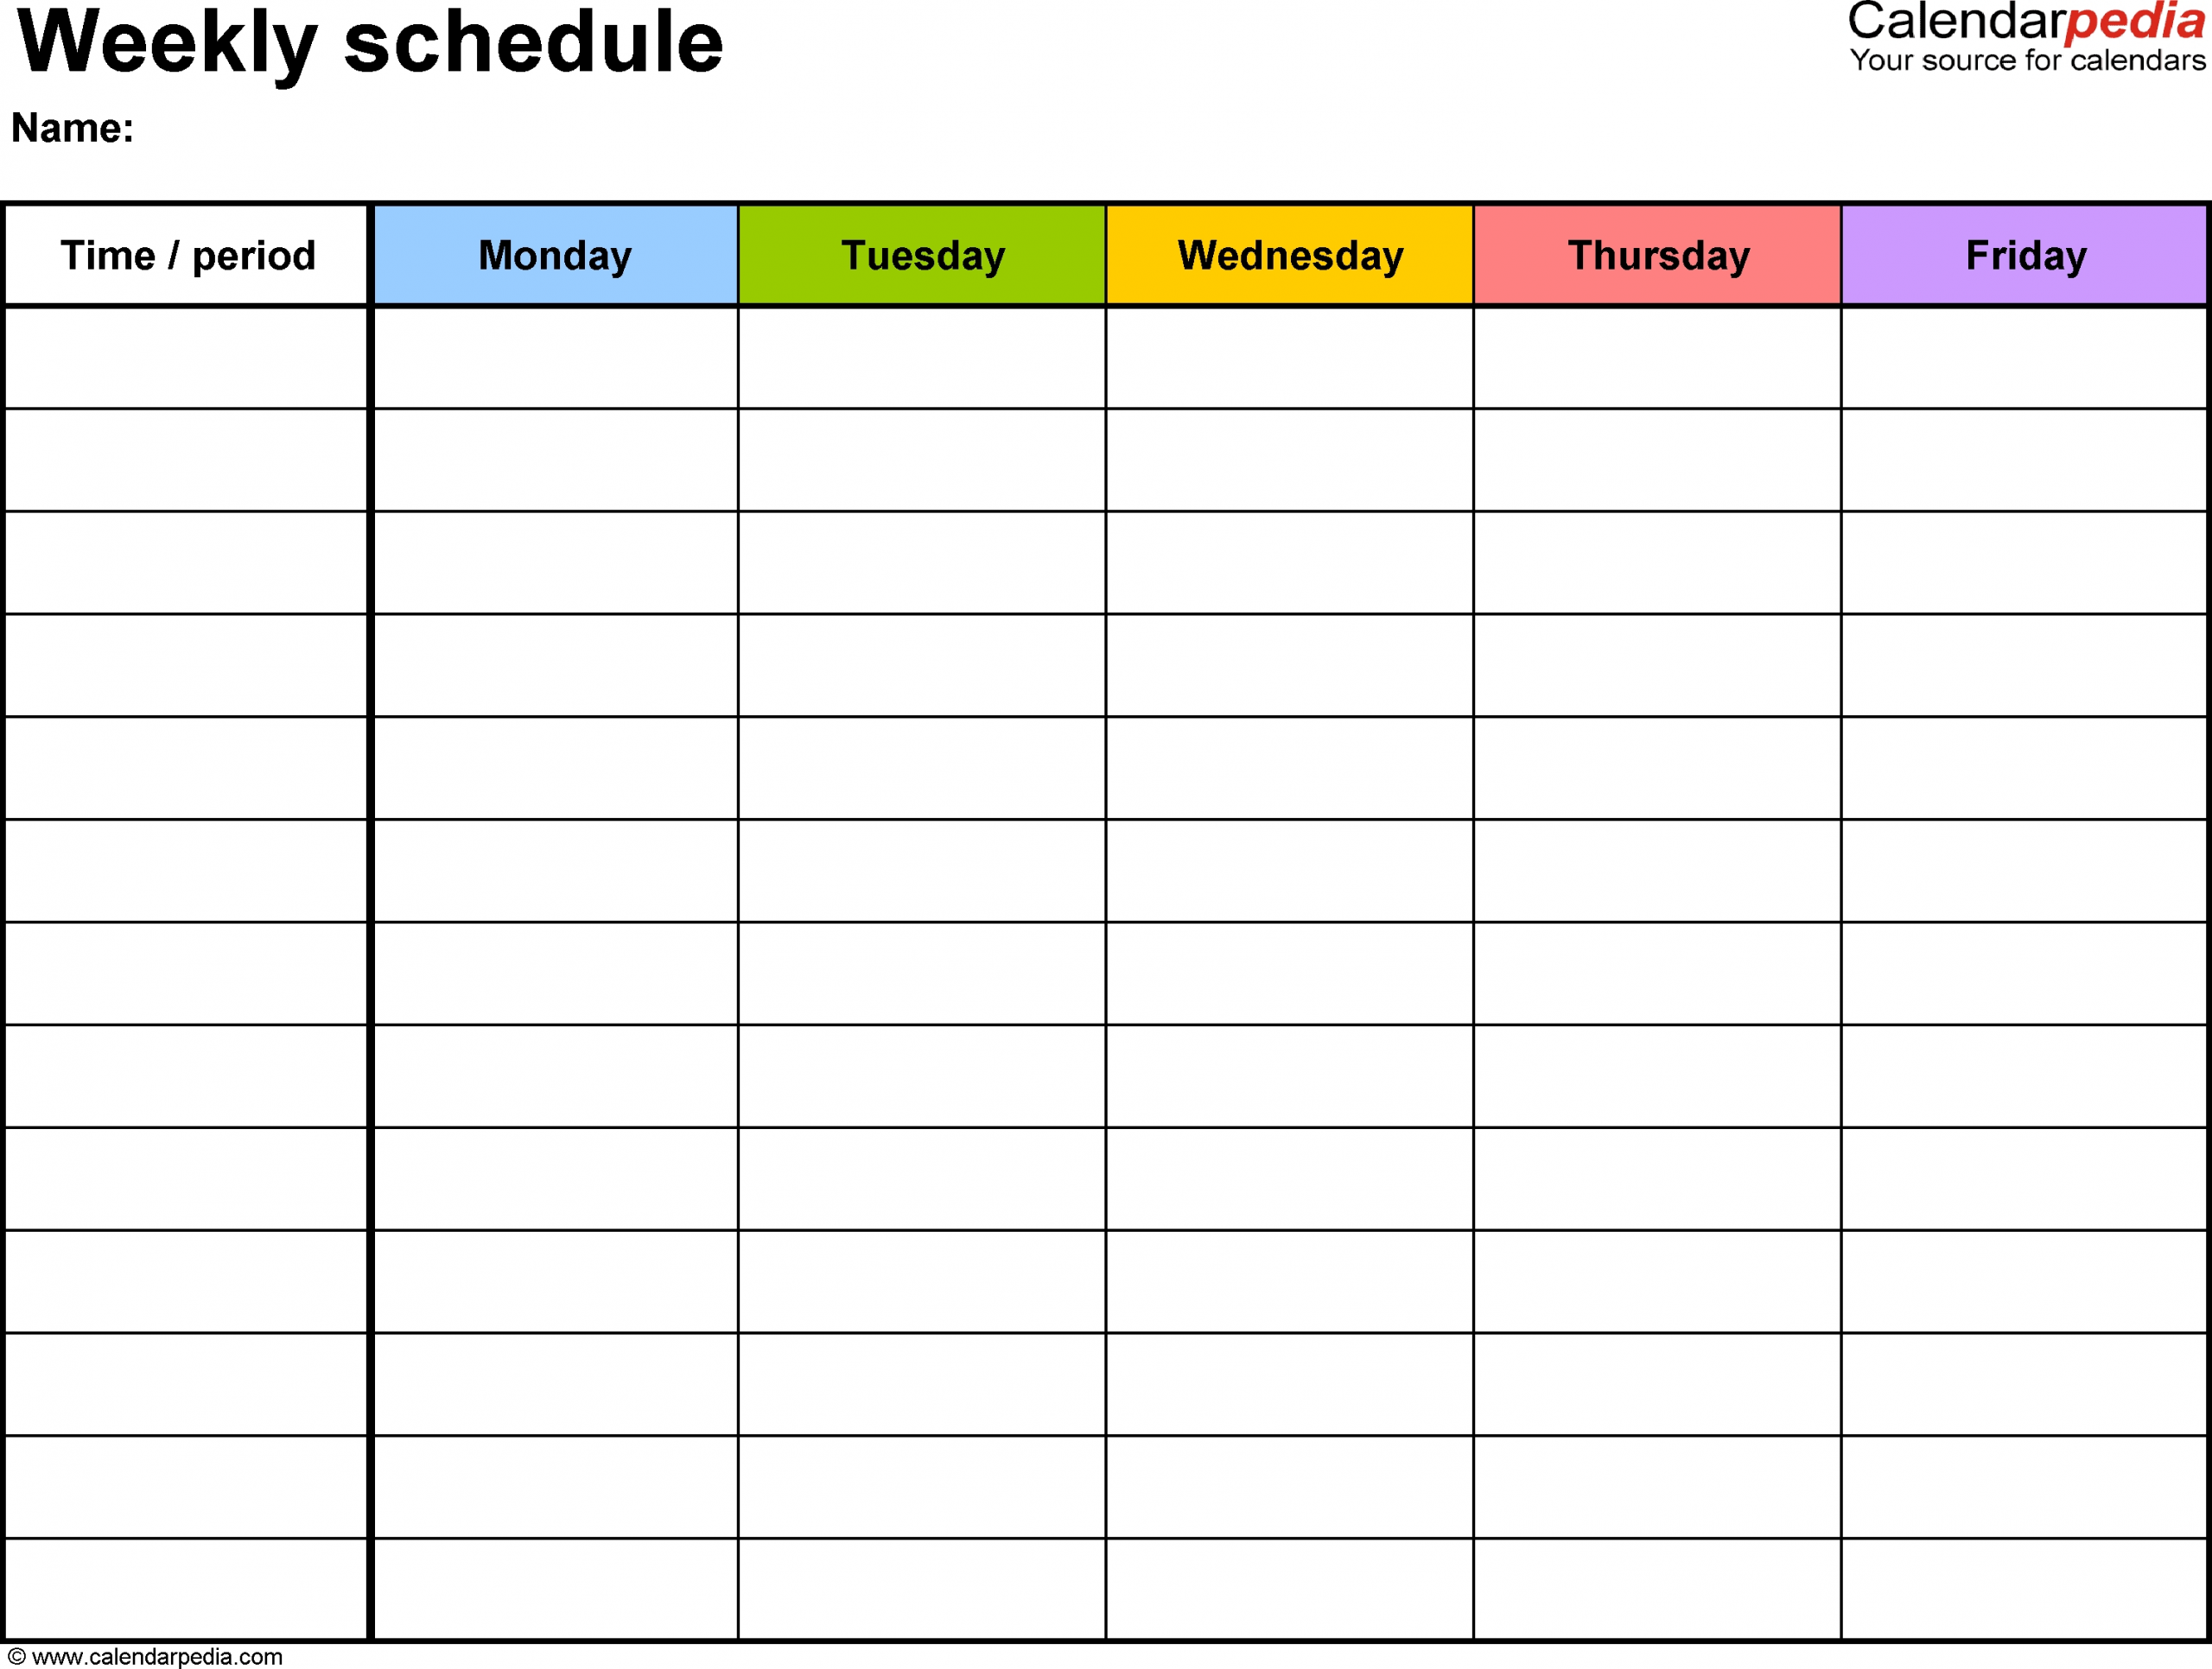 Weekly Calendar Template Monday To Friday | Calendar Monday To Friday Calendar Template